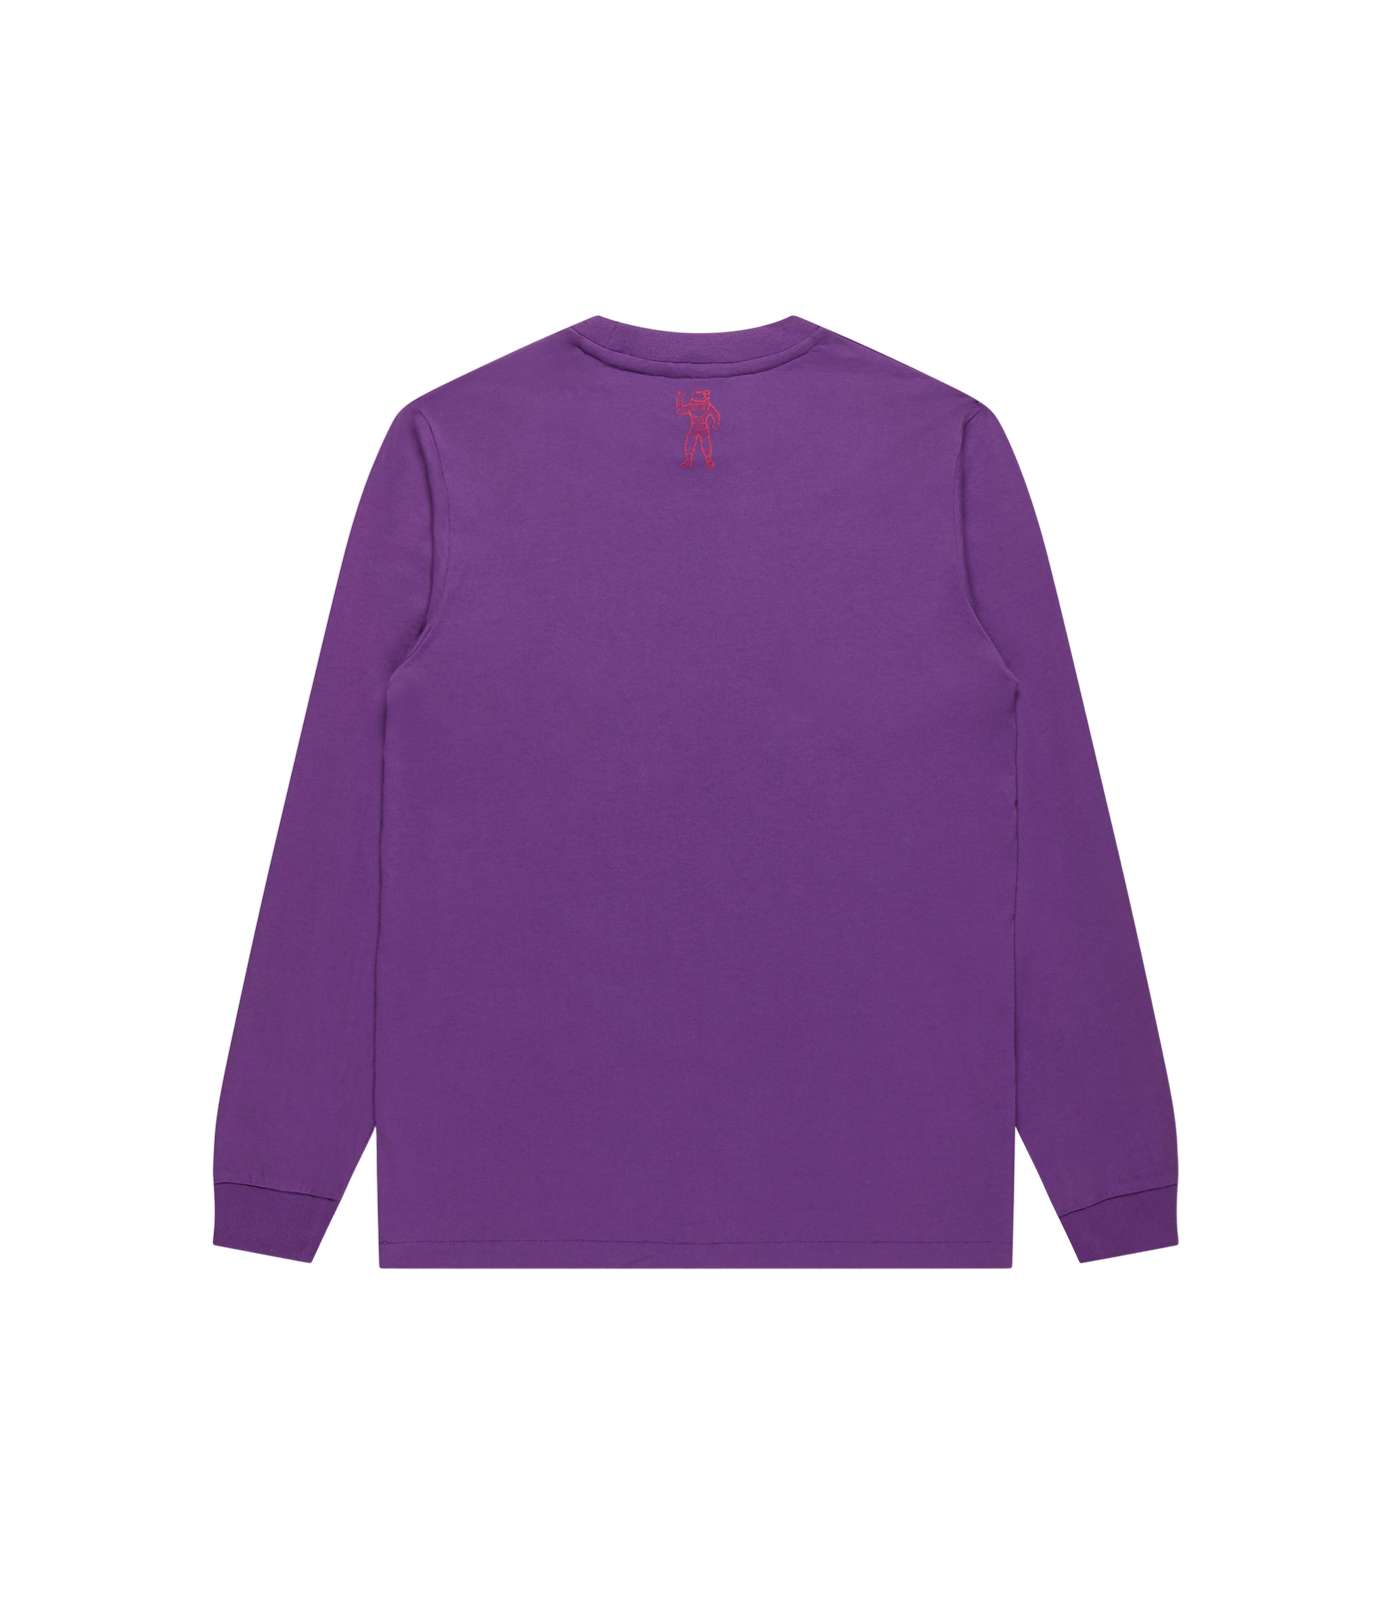 STRAIGHT LOGO L/S T-SHIRT - PURPLE